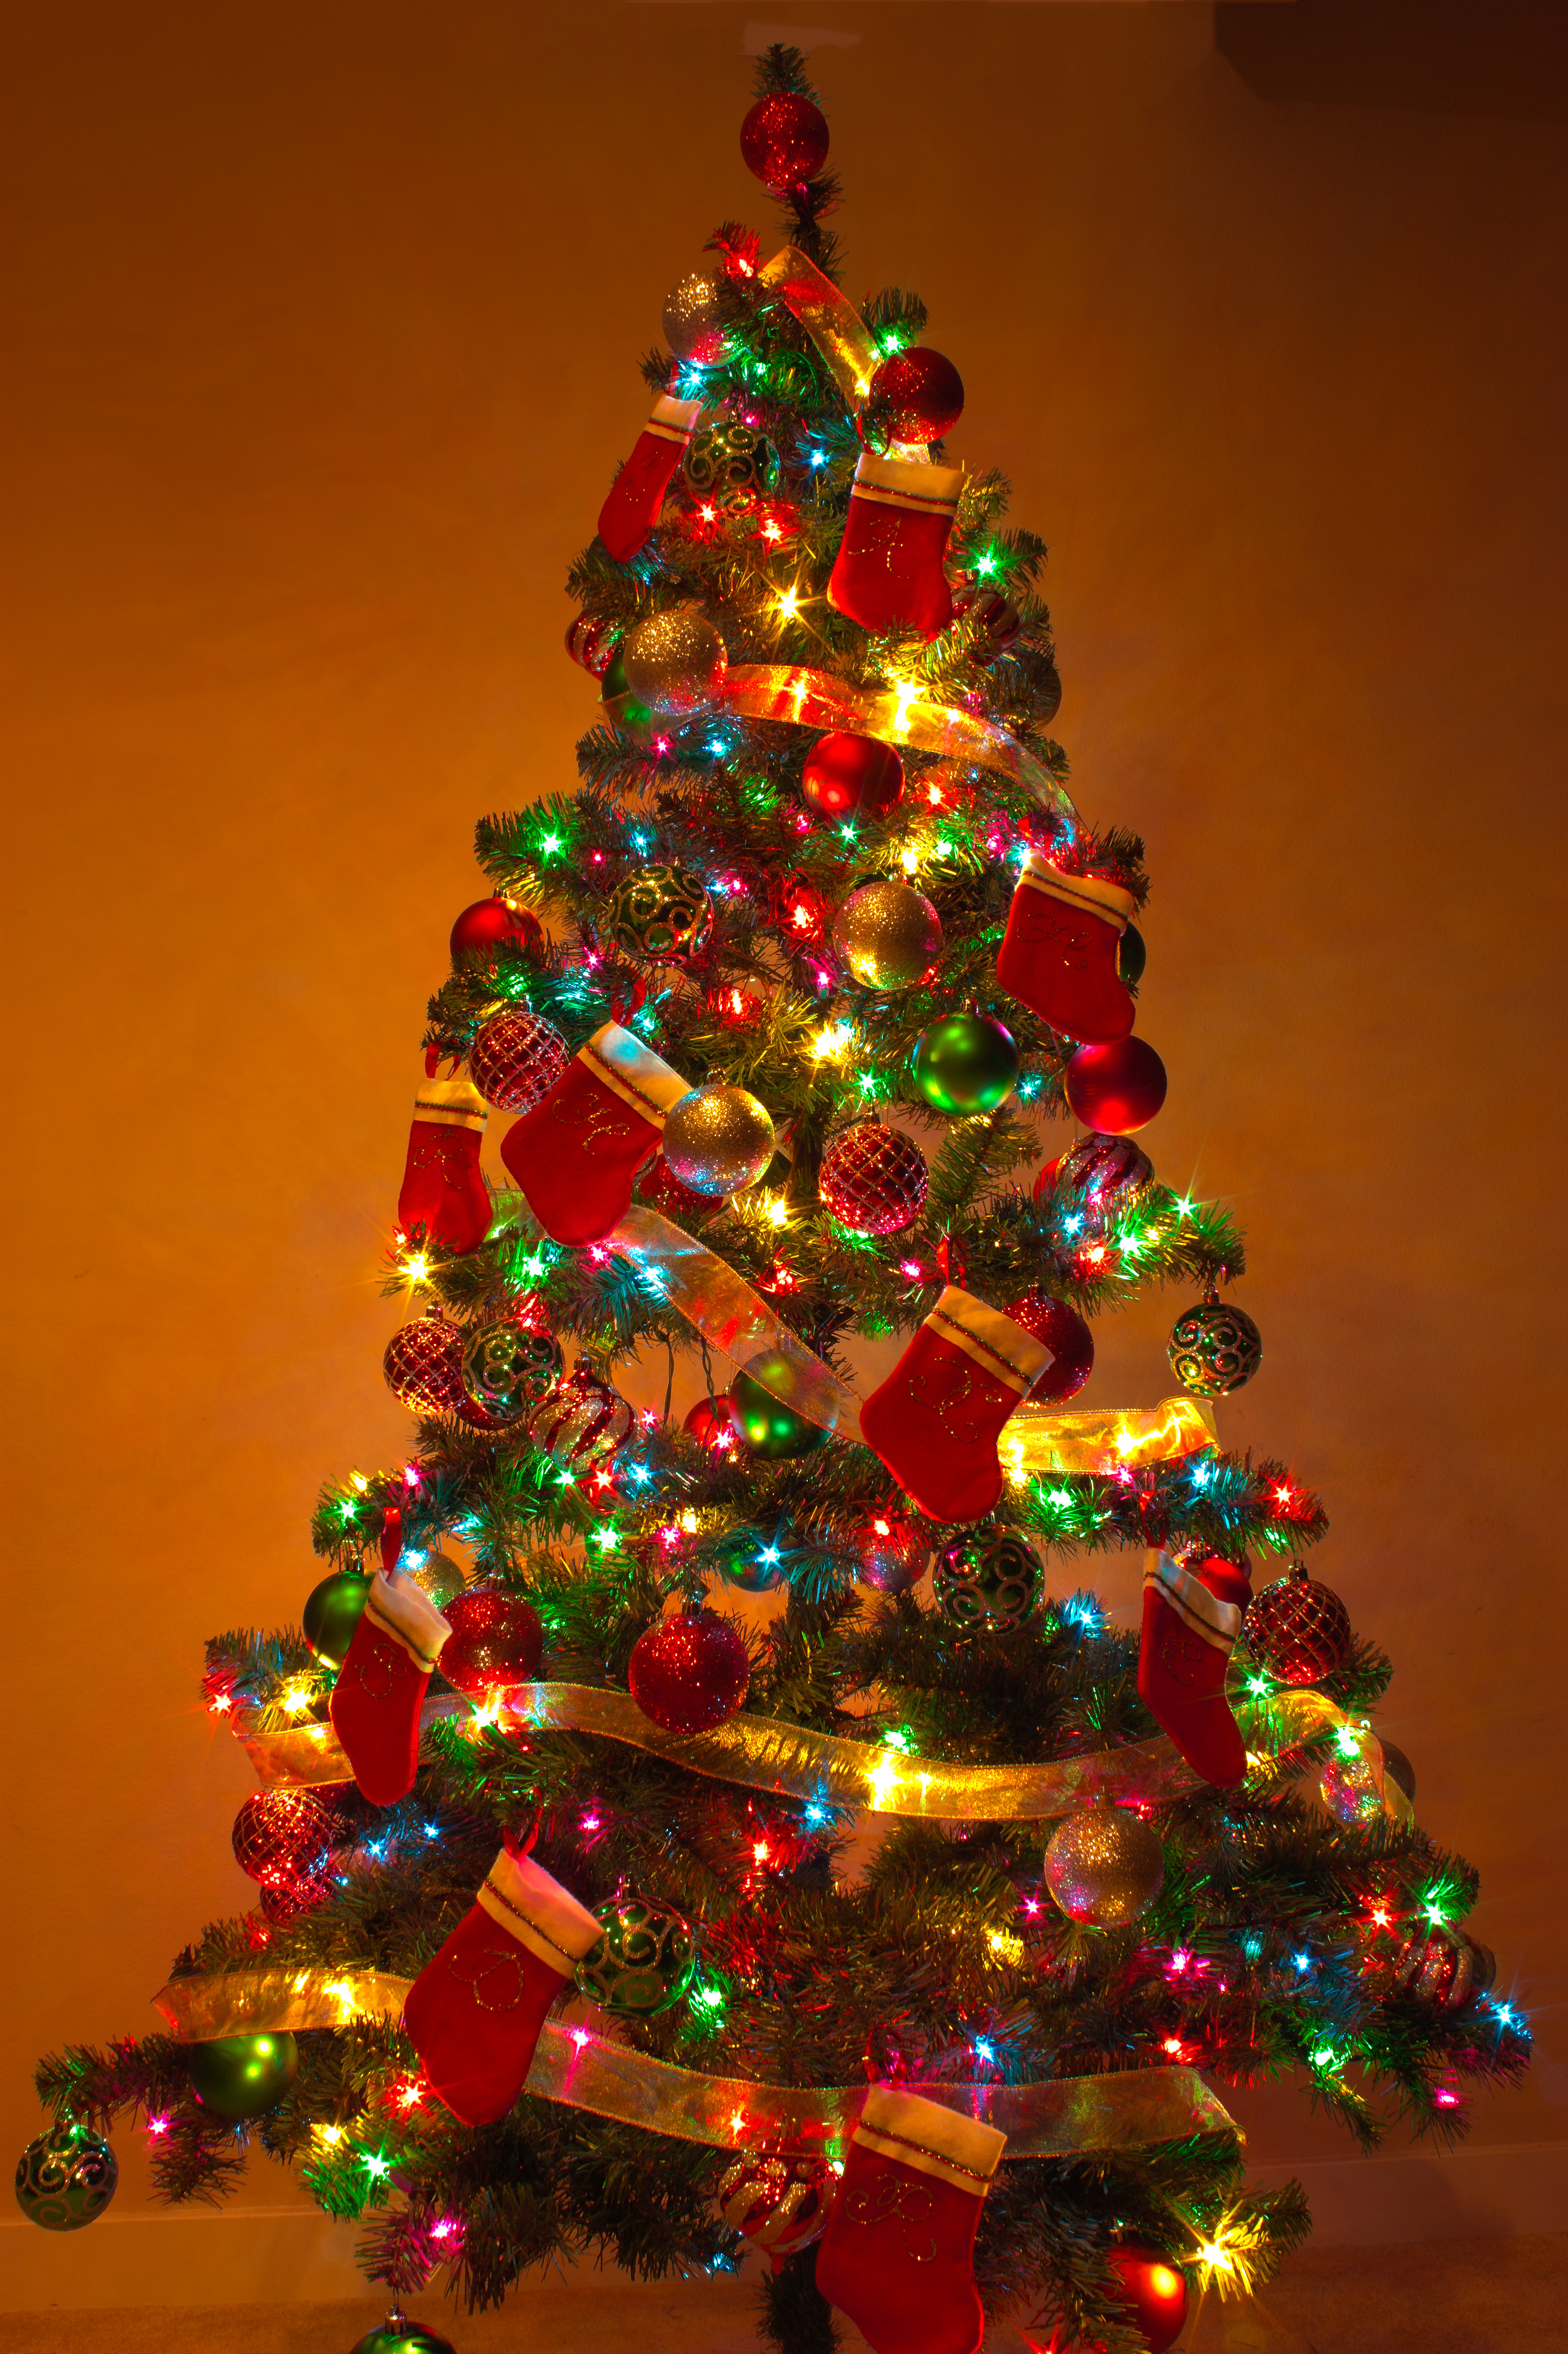 Colorful Christmas Tree Ideas.45 Colorful Christmas Tree Decorations Ideas Decoration Love